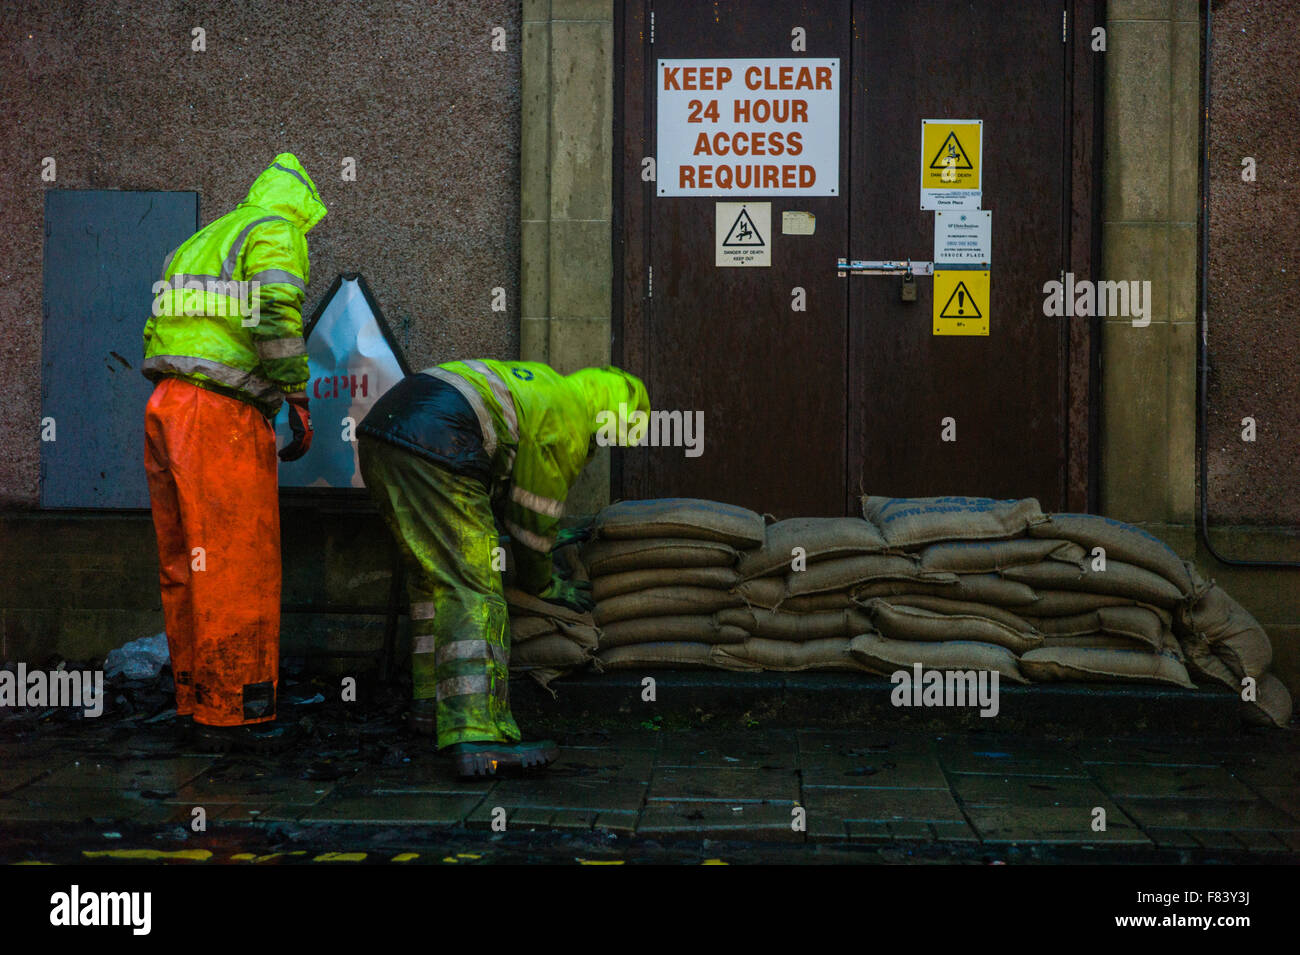 Hawick, Scotland, UK. 5th December 2015. Scottish Power workmen build sand bag barriers at sub stations in Hawick - Stock Image